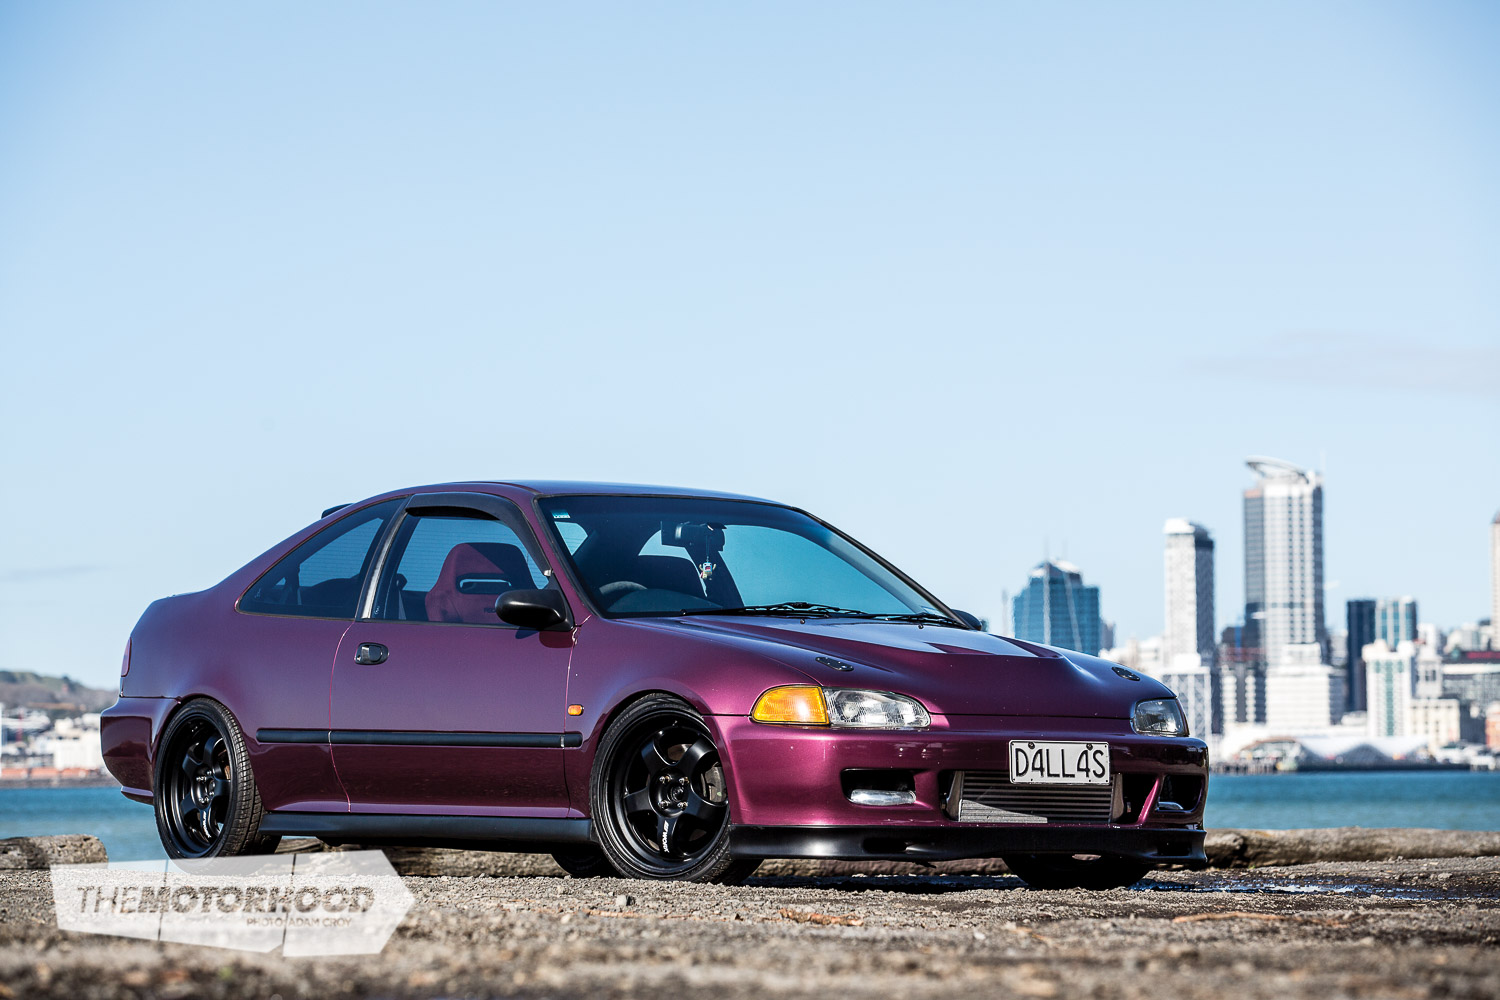 Couped up: the mighty turbo Civic built on a budget — The Motorhood